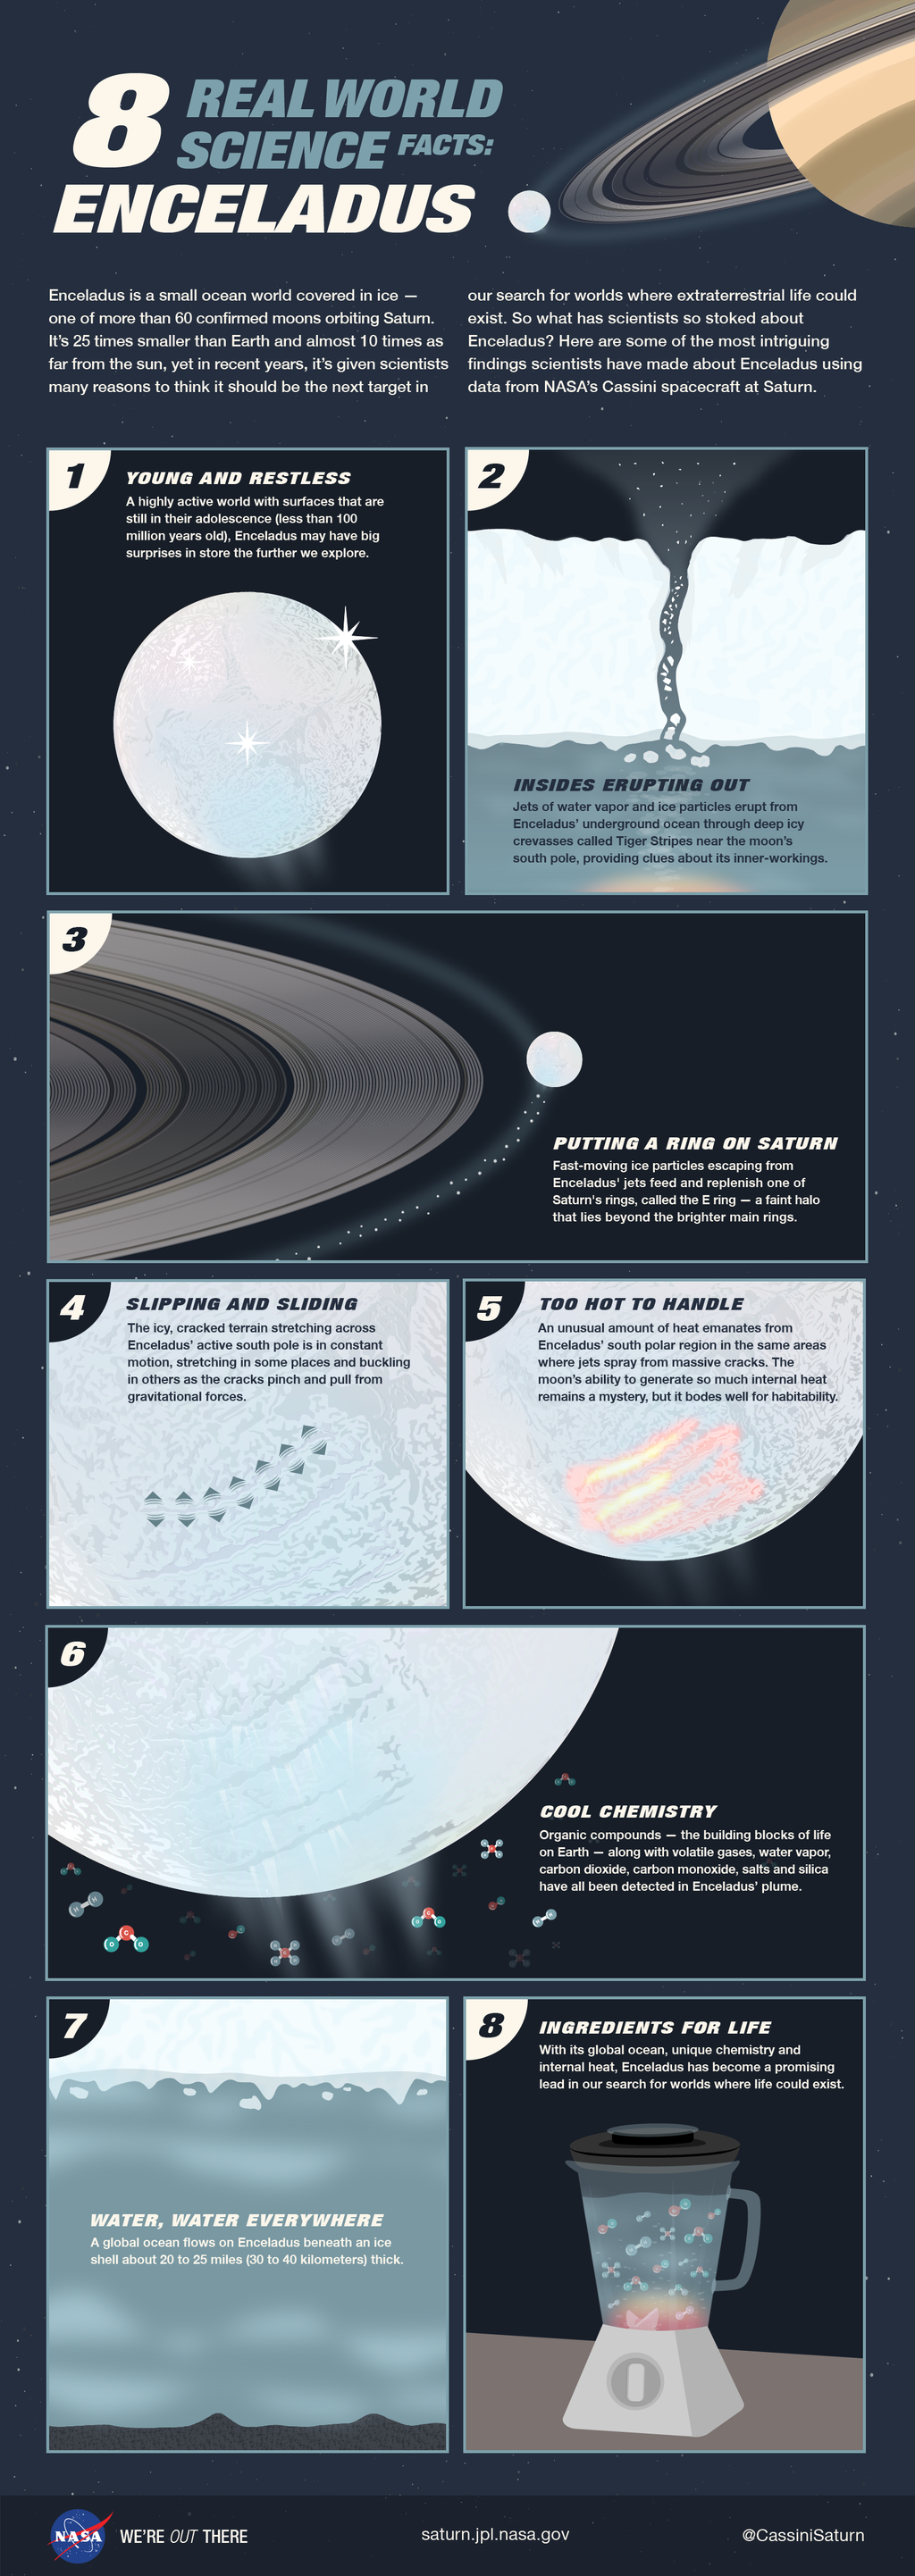 8 Real World Science Facts About Saturn's Moon Enceladus